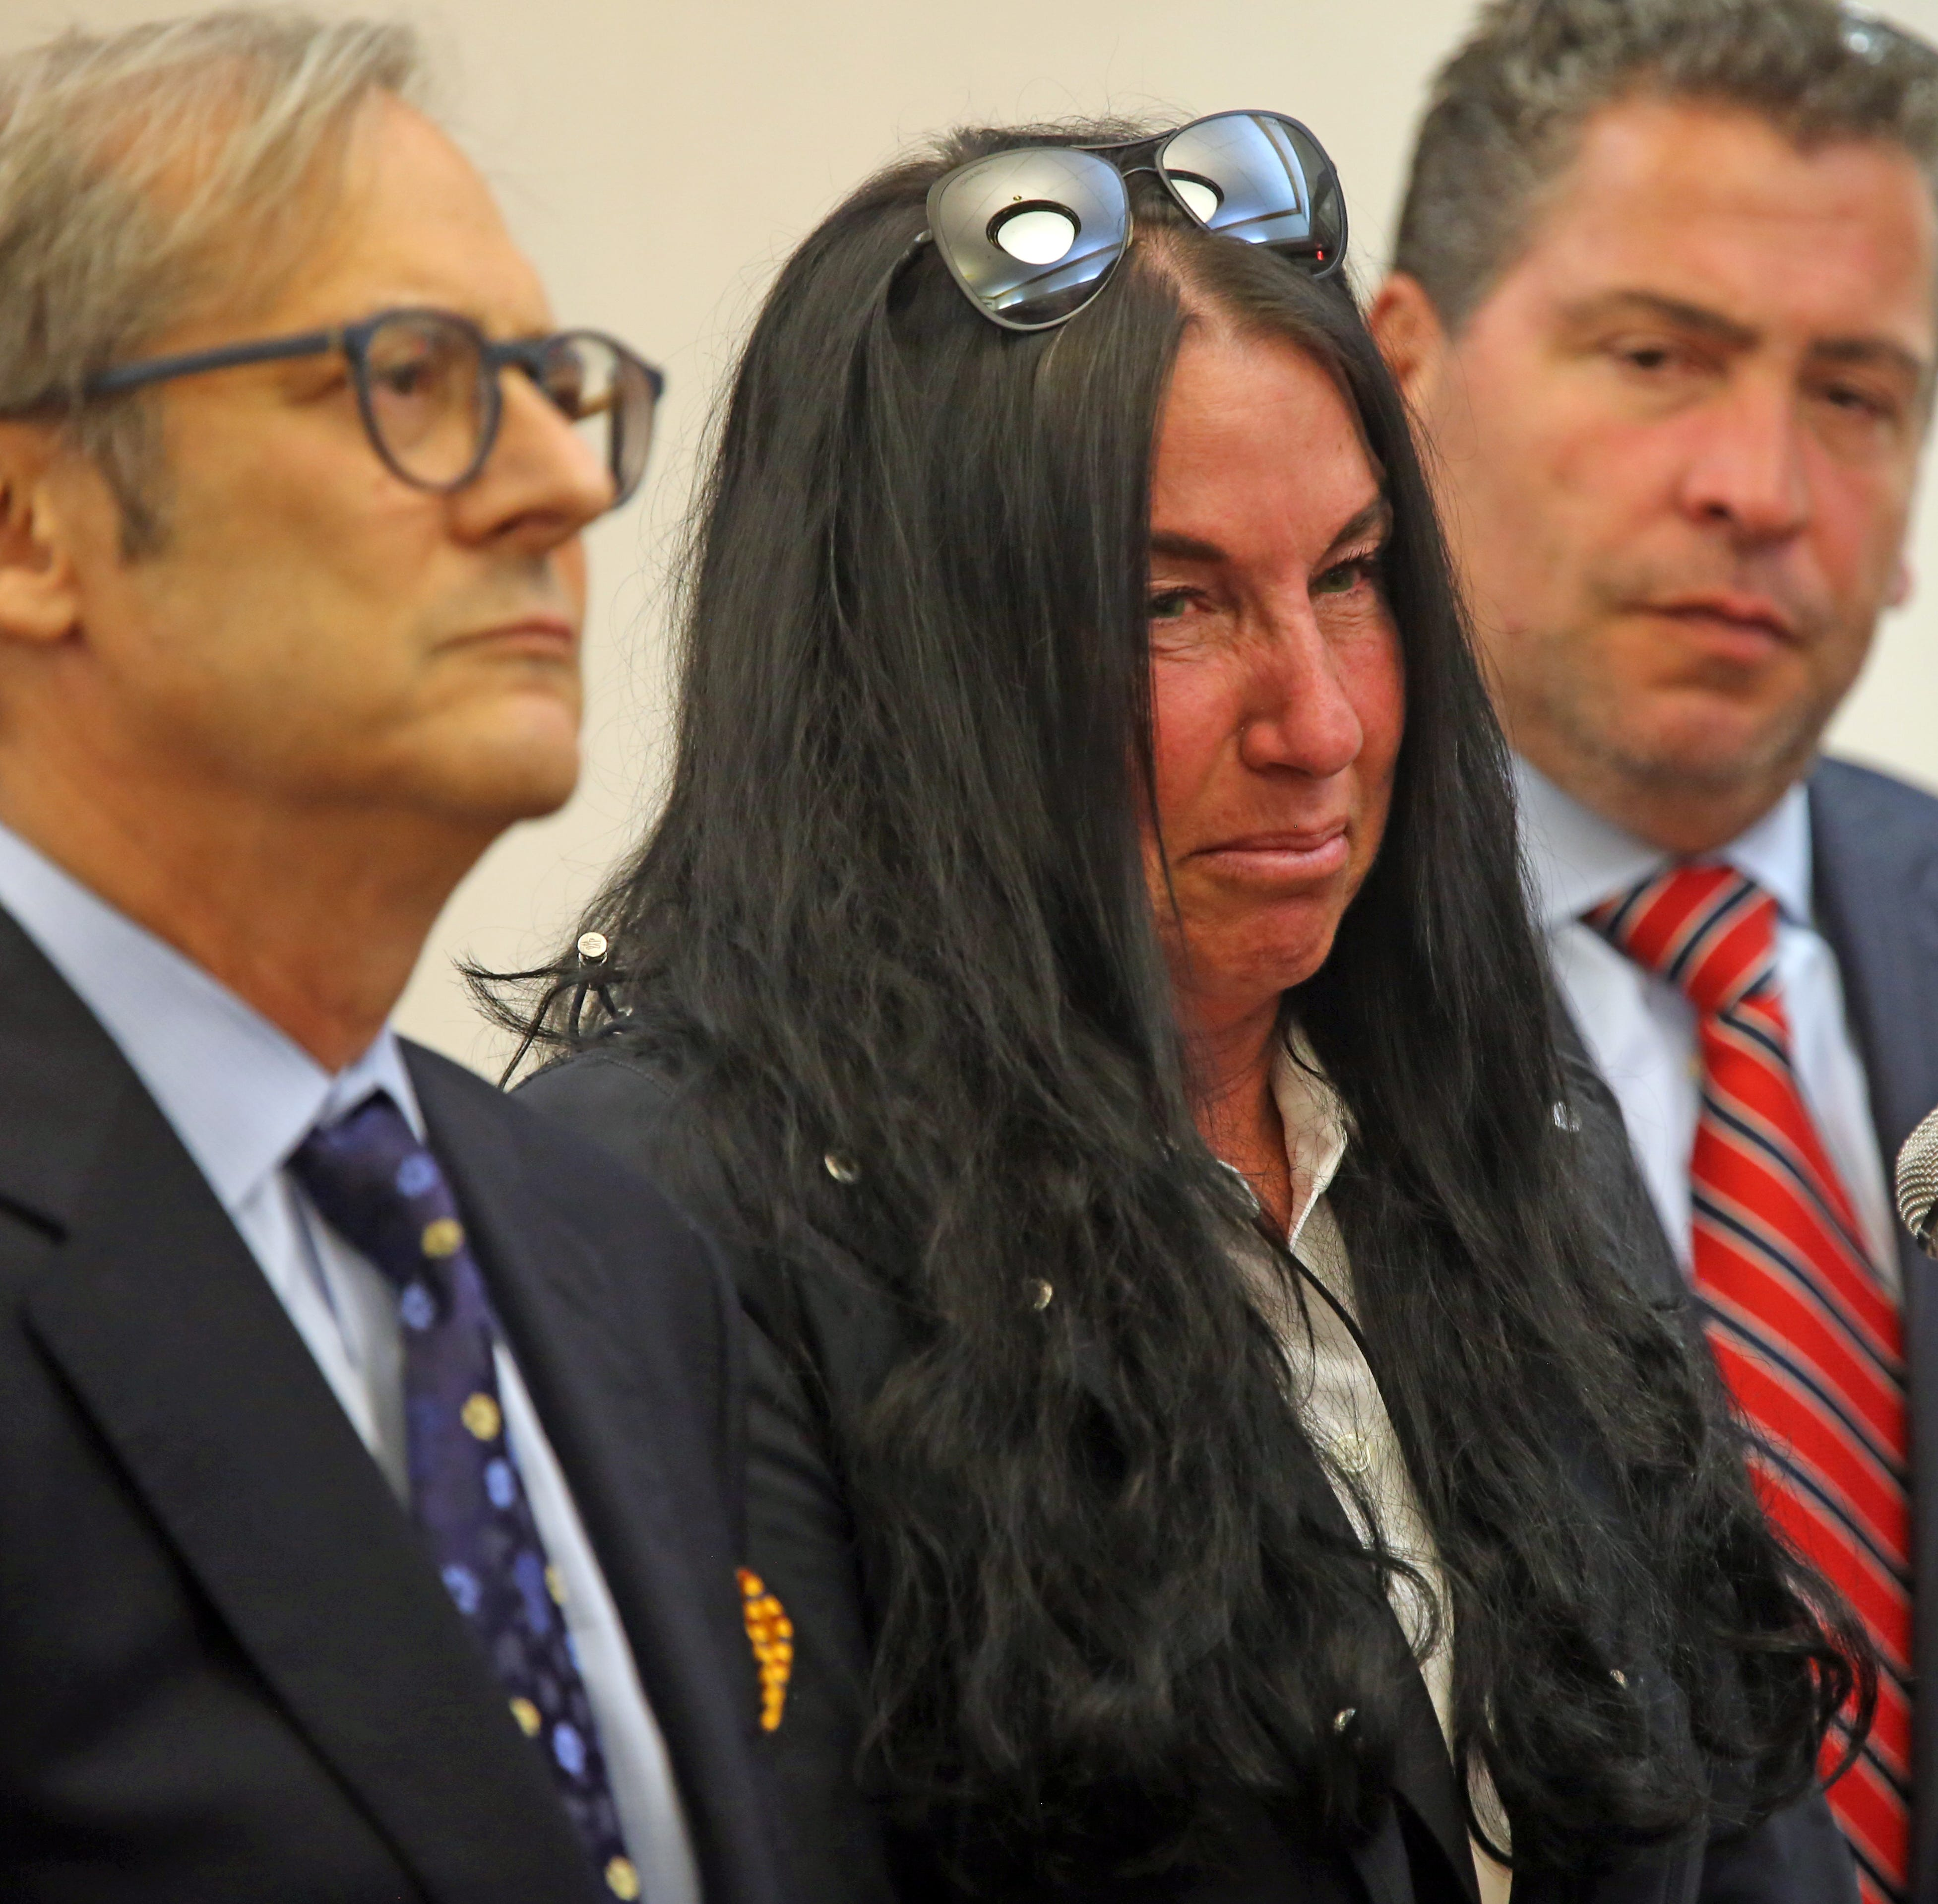 No jail time for Jodi Sarf in fatal hit and run but judge calls driving record 'horrendous'